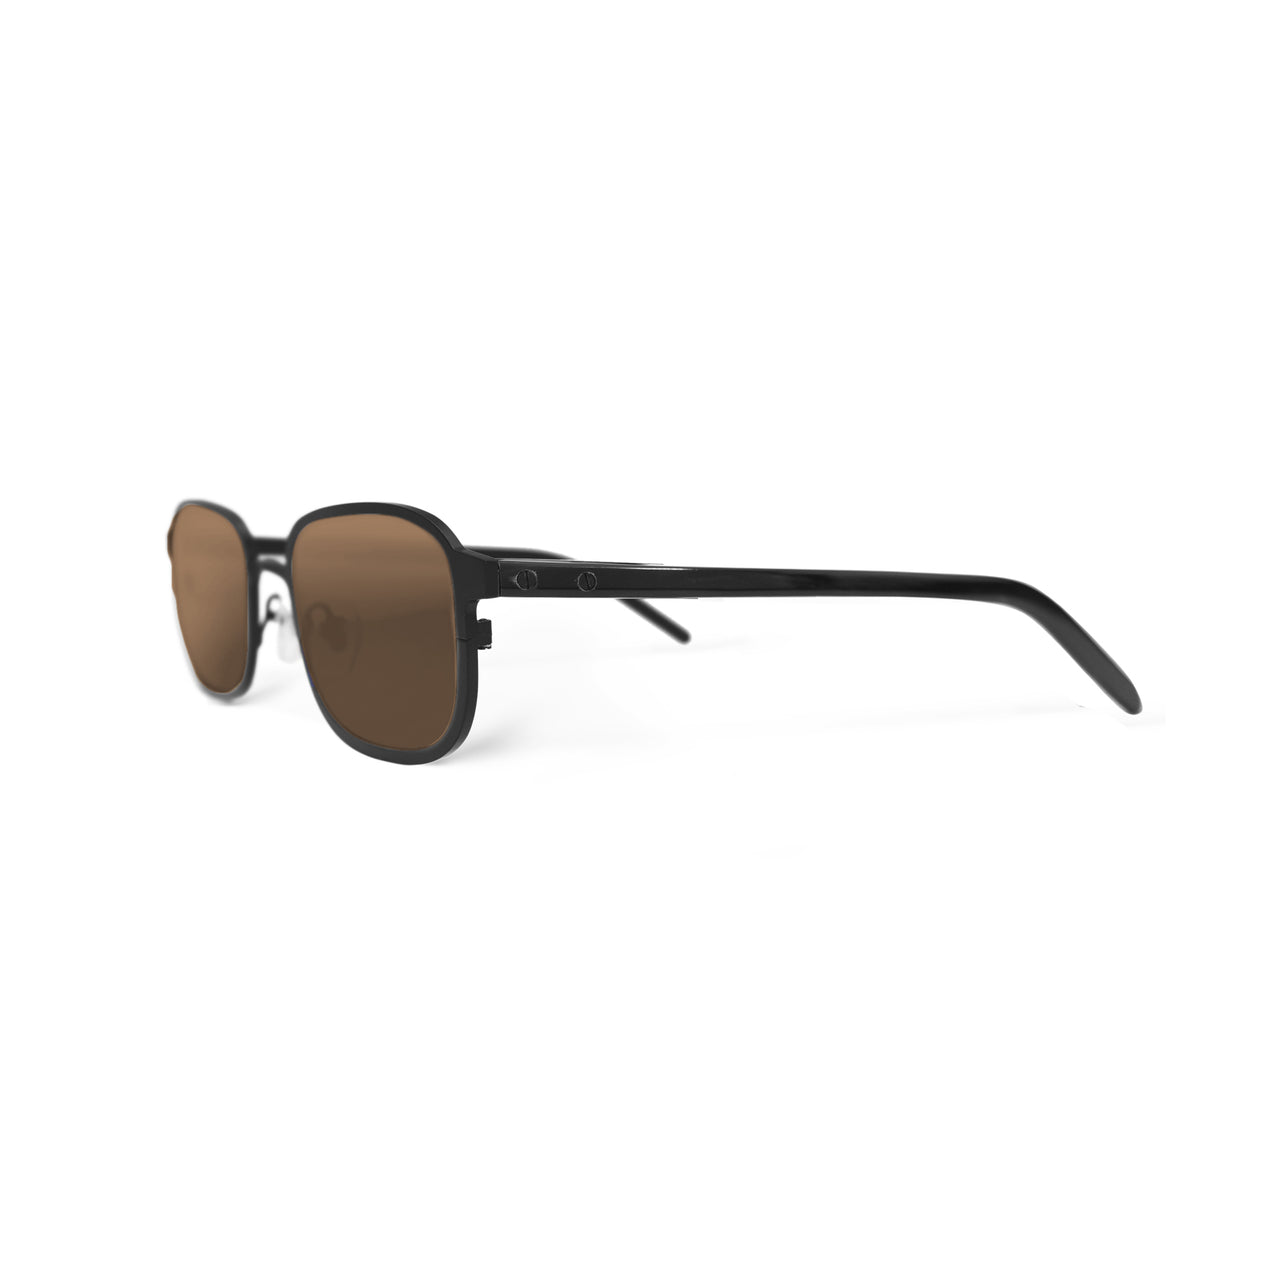 Metal / Horn. Matte Black / Dark. Bronze Mirror Lens. - BLYSZAK eyewear eyewear - eyewear, optical, sunglasses